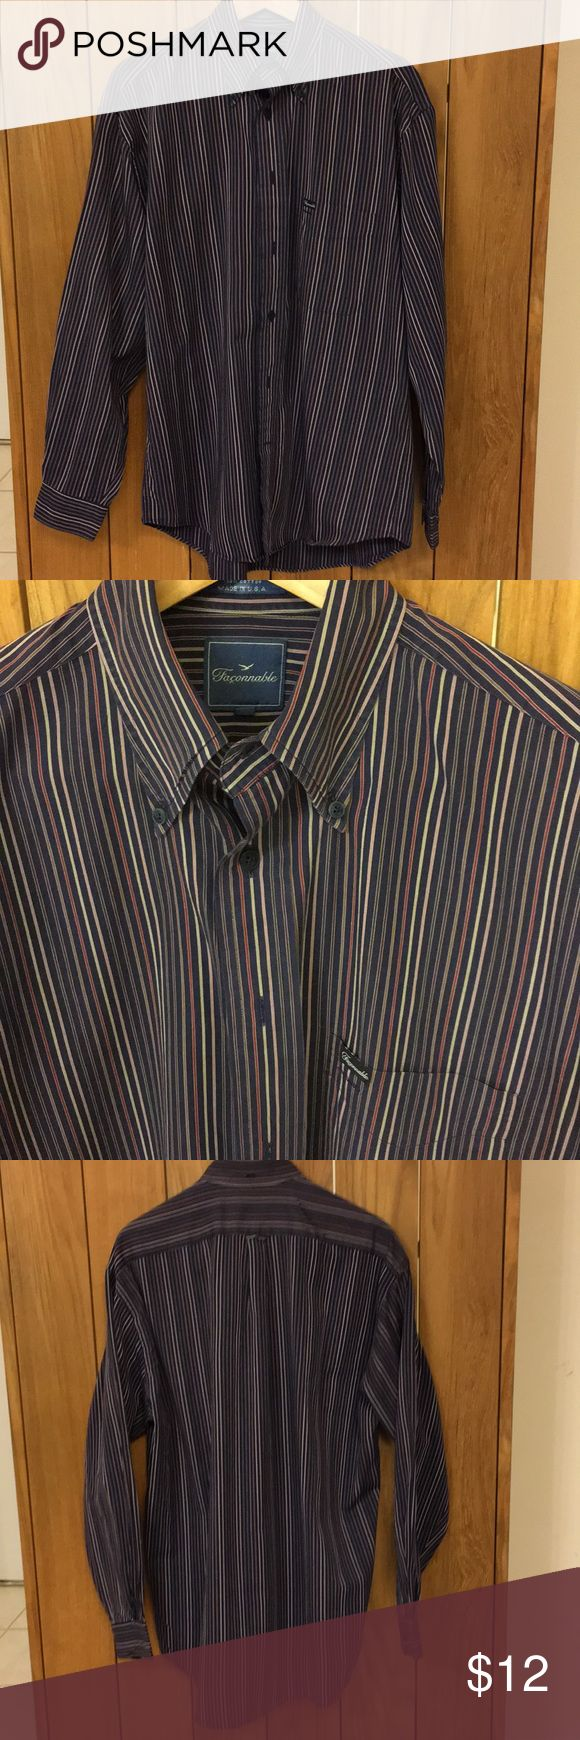 Faconnable LS Shirt M 100% Cotton  Great Condition Made in USA Stripes Faconnable Shirts Dress Shirts